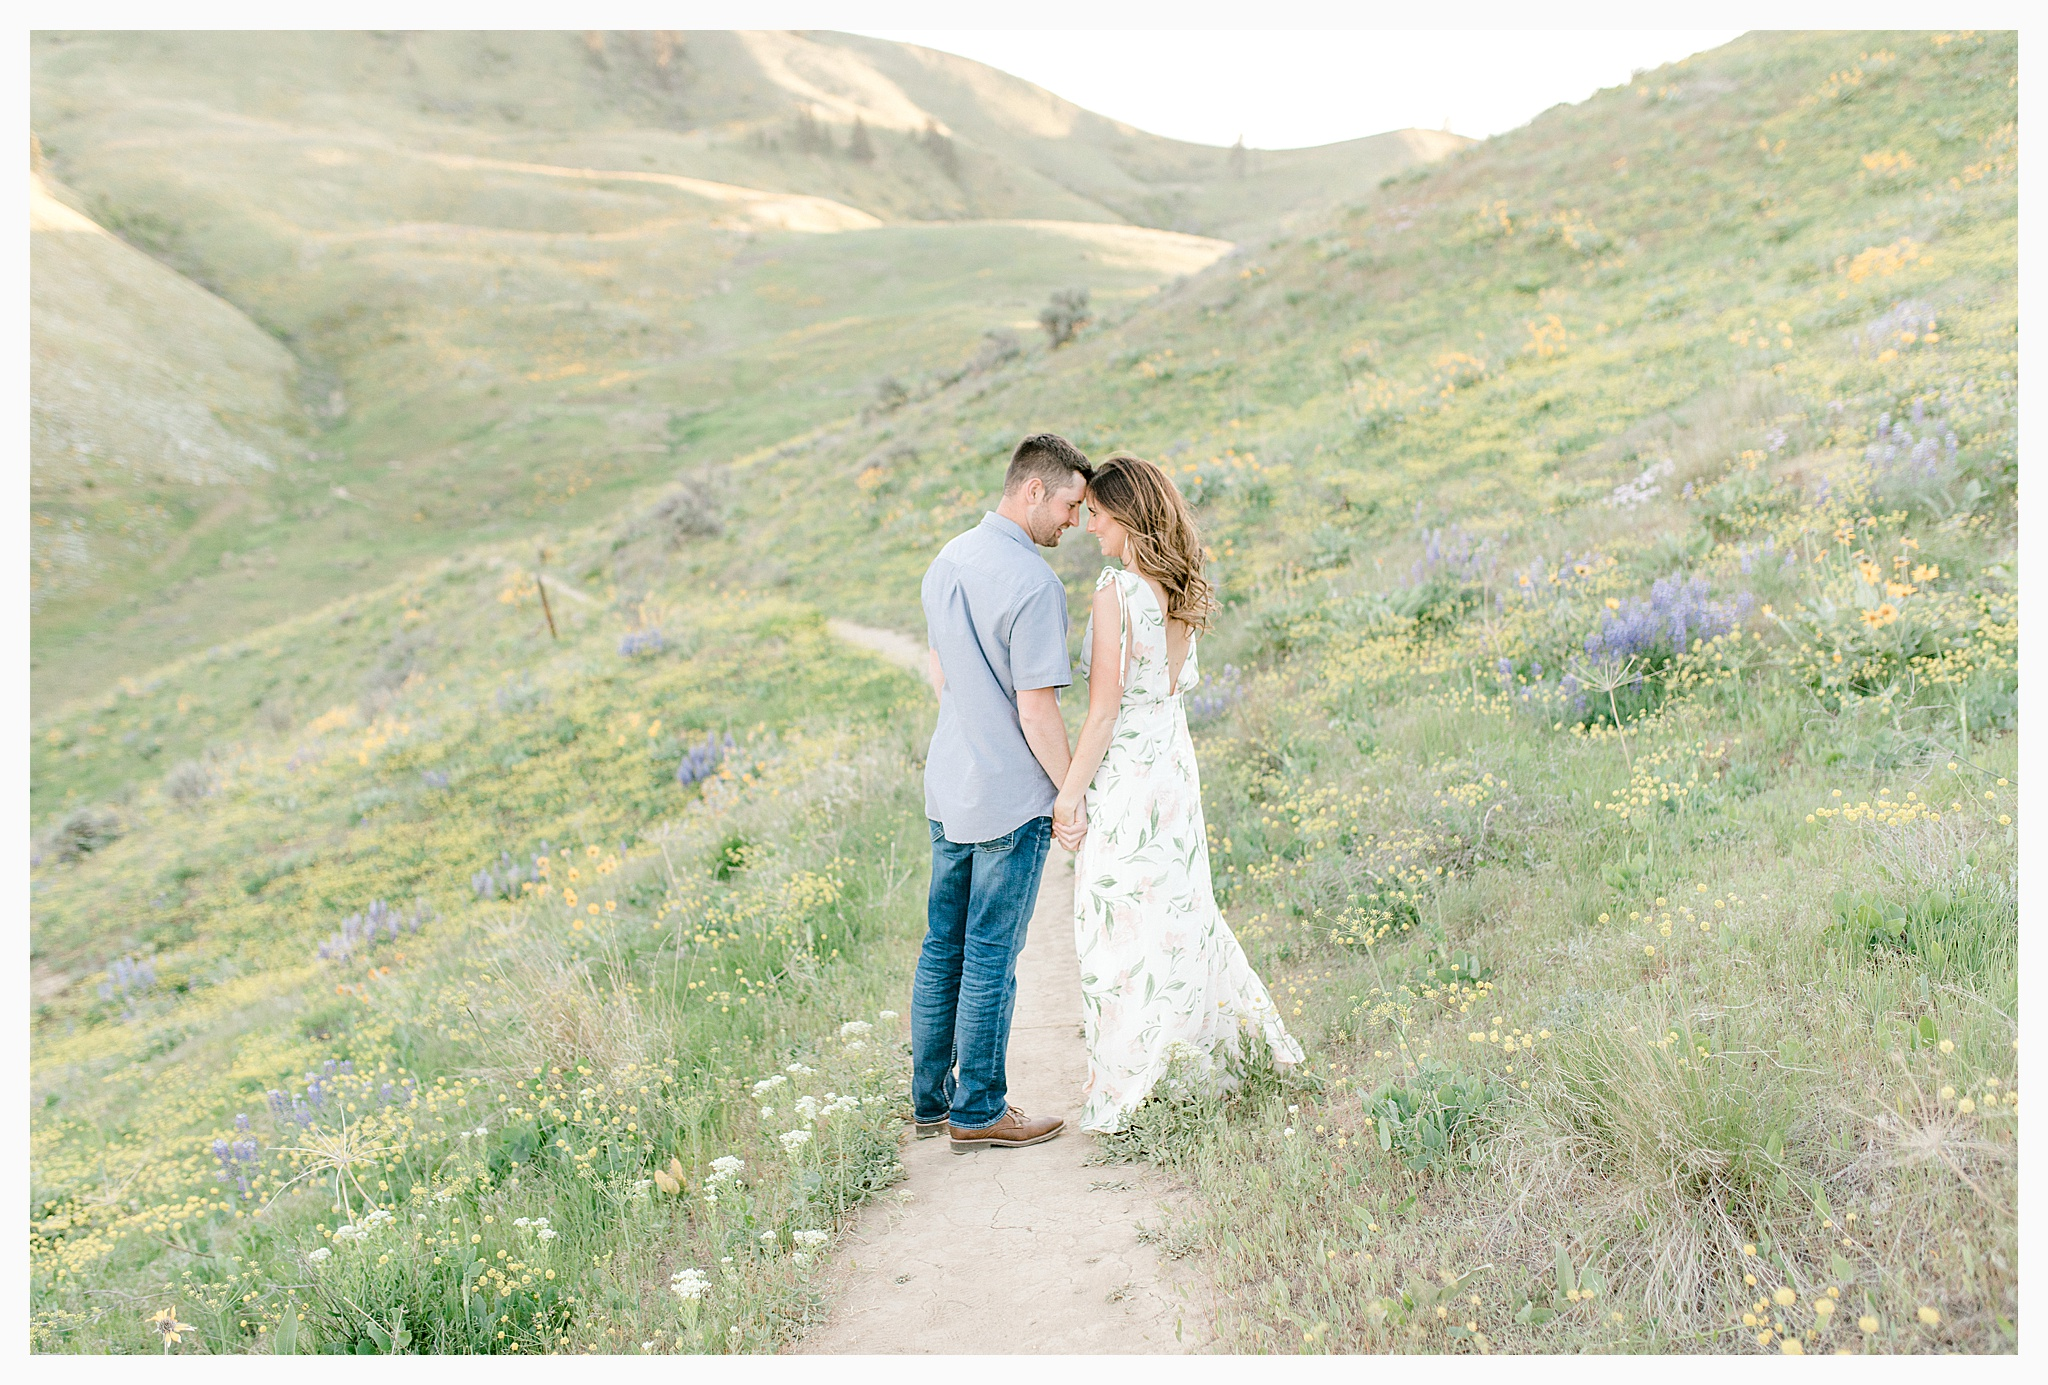 Engagement session amongst the wildflowers in Wenatchee, Washington | Engagement Session Outfit Inspiration for Wedding Photography with Emma Rose Company | Light and Airy PNW Photographer, Seattle Bride_0019.jpg